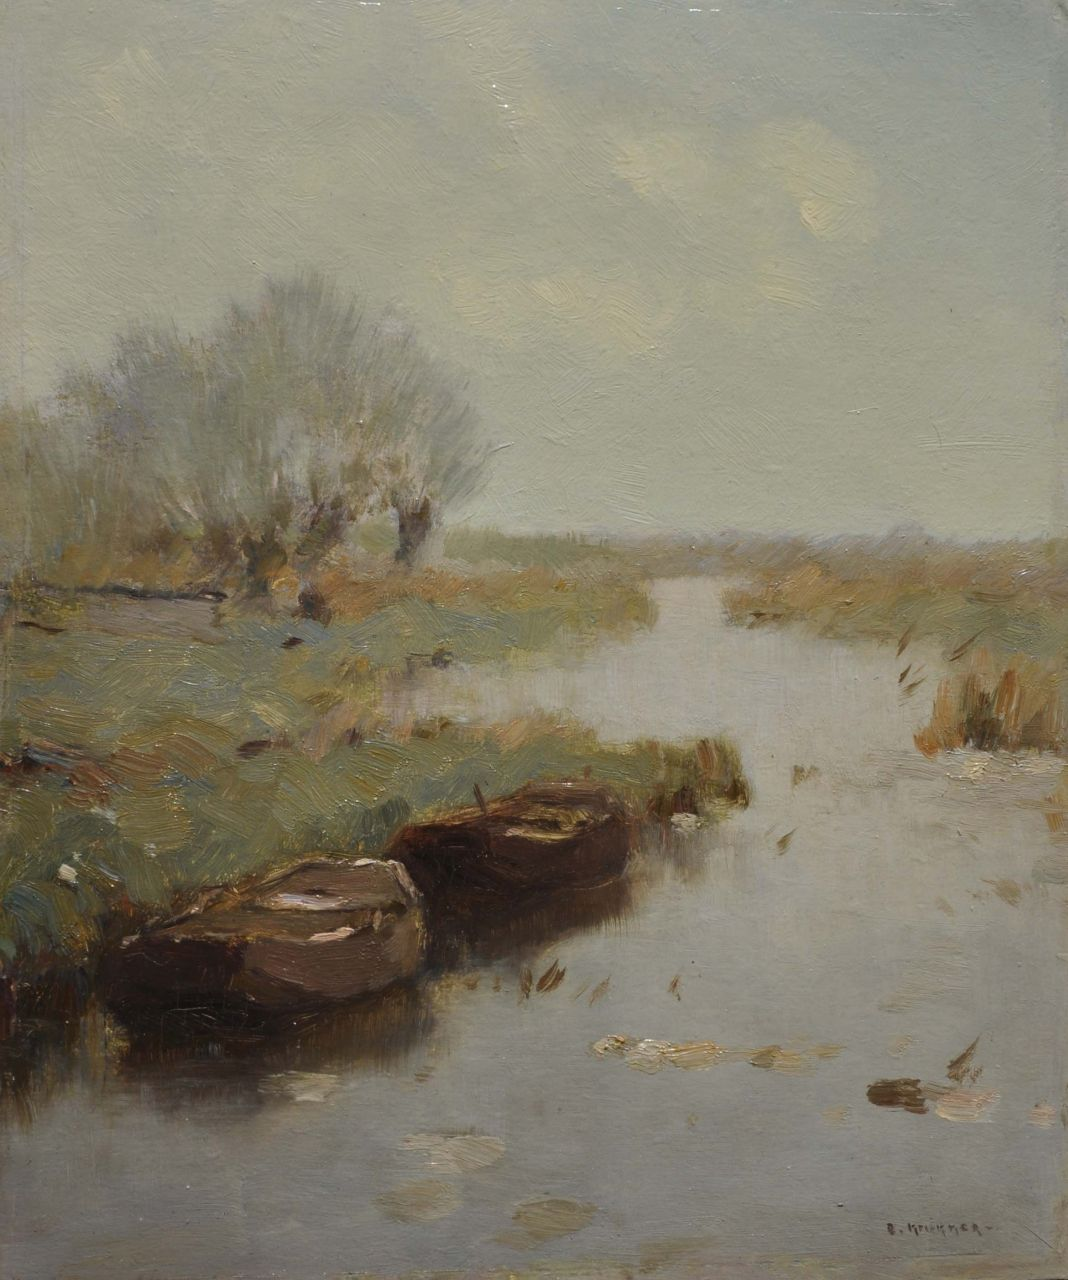 Knikker A.  | Aris Knikker, Moored rowing boats in a canal, oil on painter's board 25.4 x 21.4 cm, signed l.r.